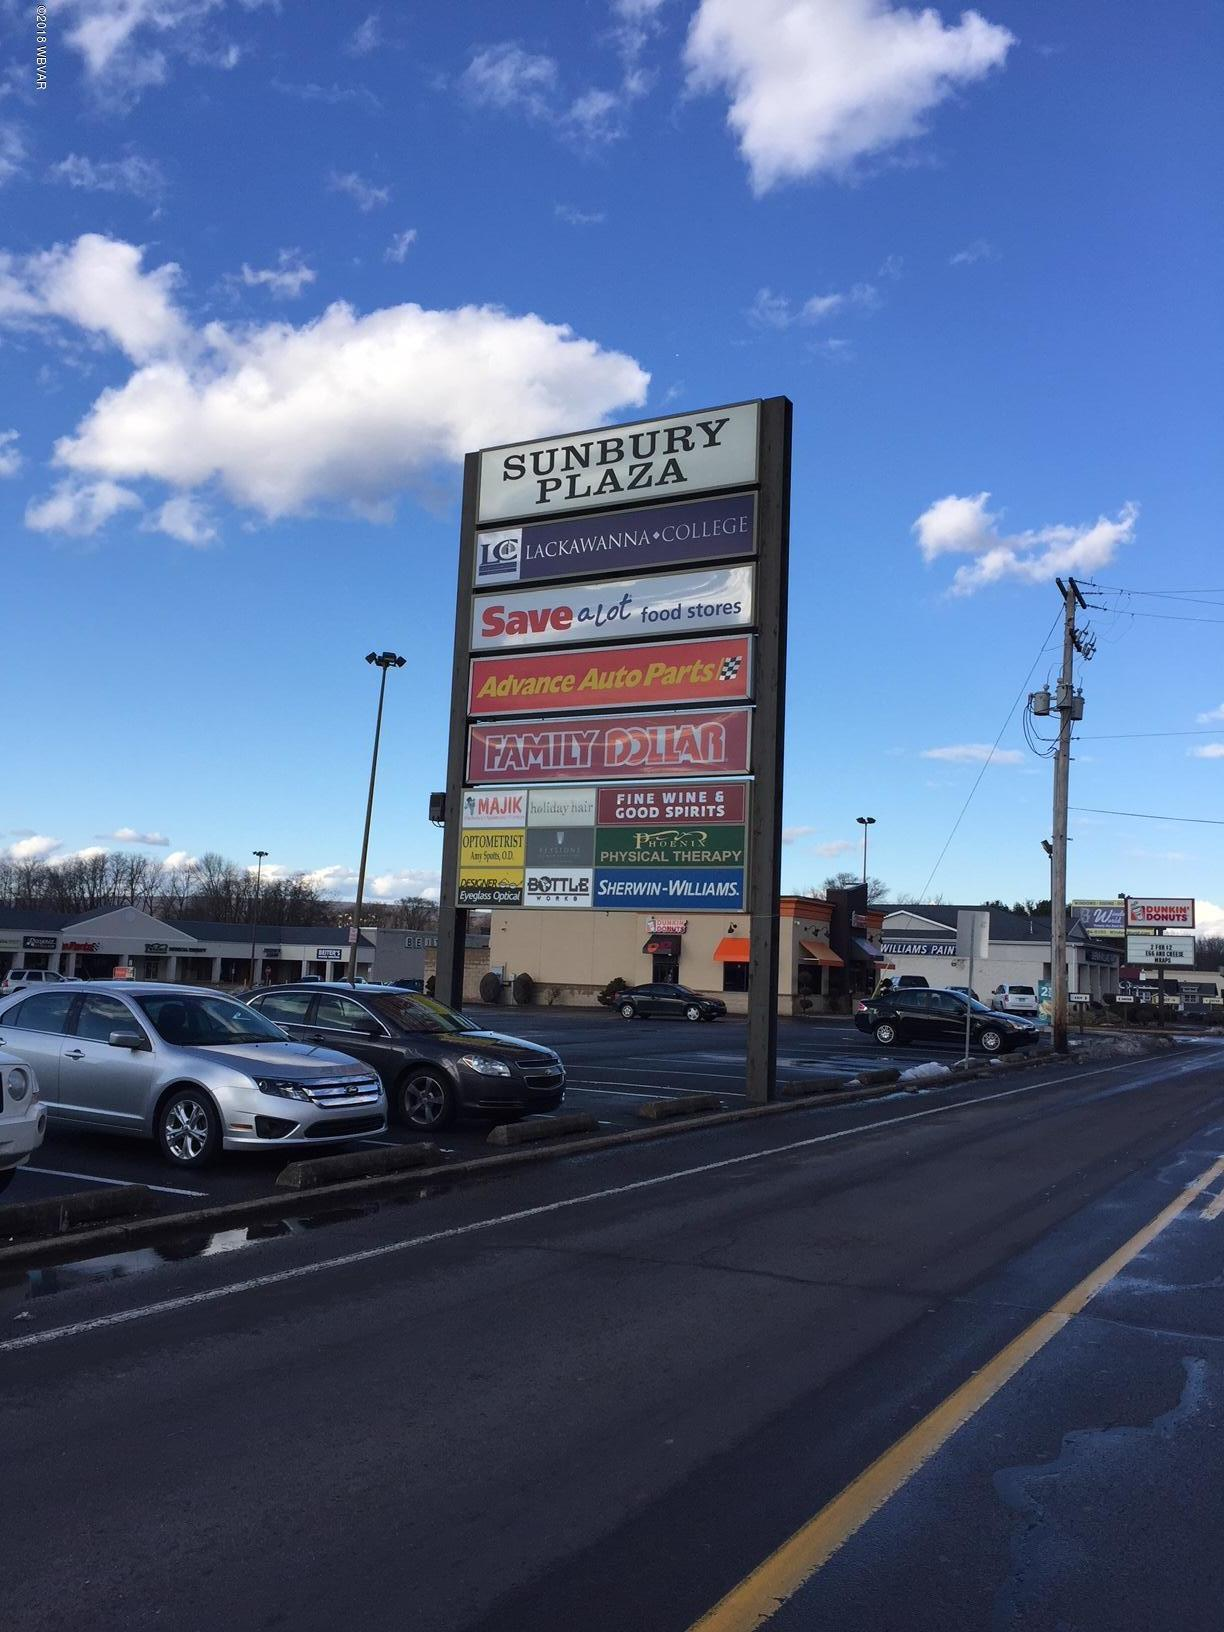 1125 4TH STREET, Sunbury, PA 17801, ,1 BathroomBathrooms,Comm/ind lease,For sale,4TH,WB-83365